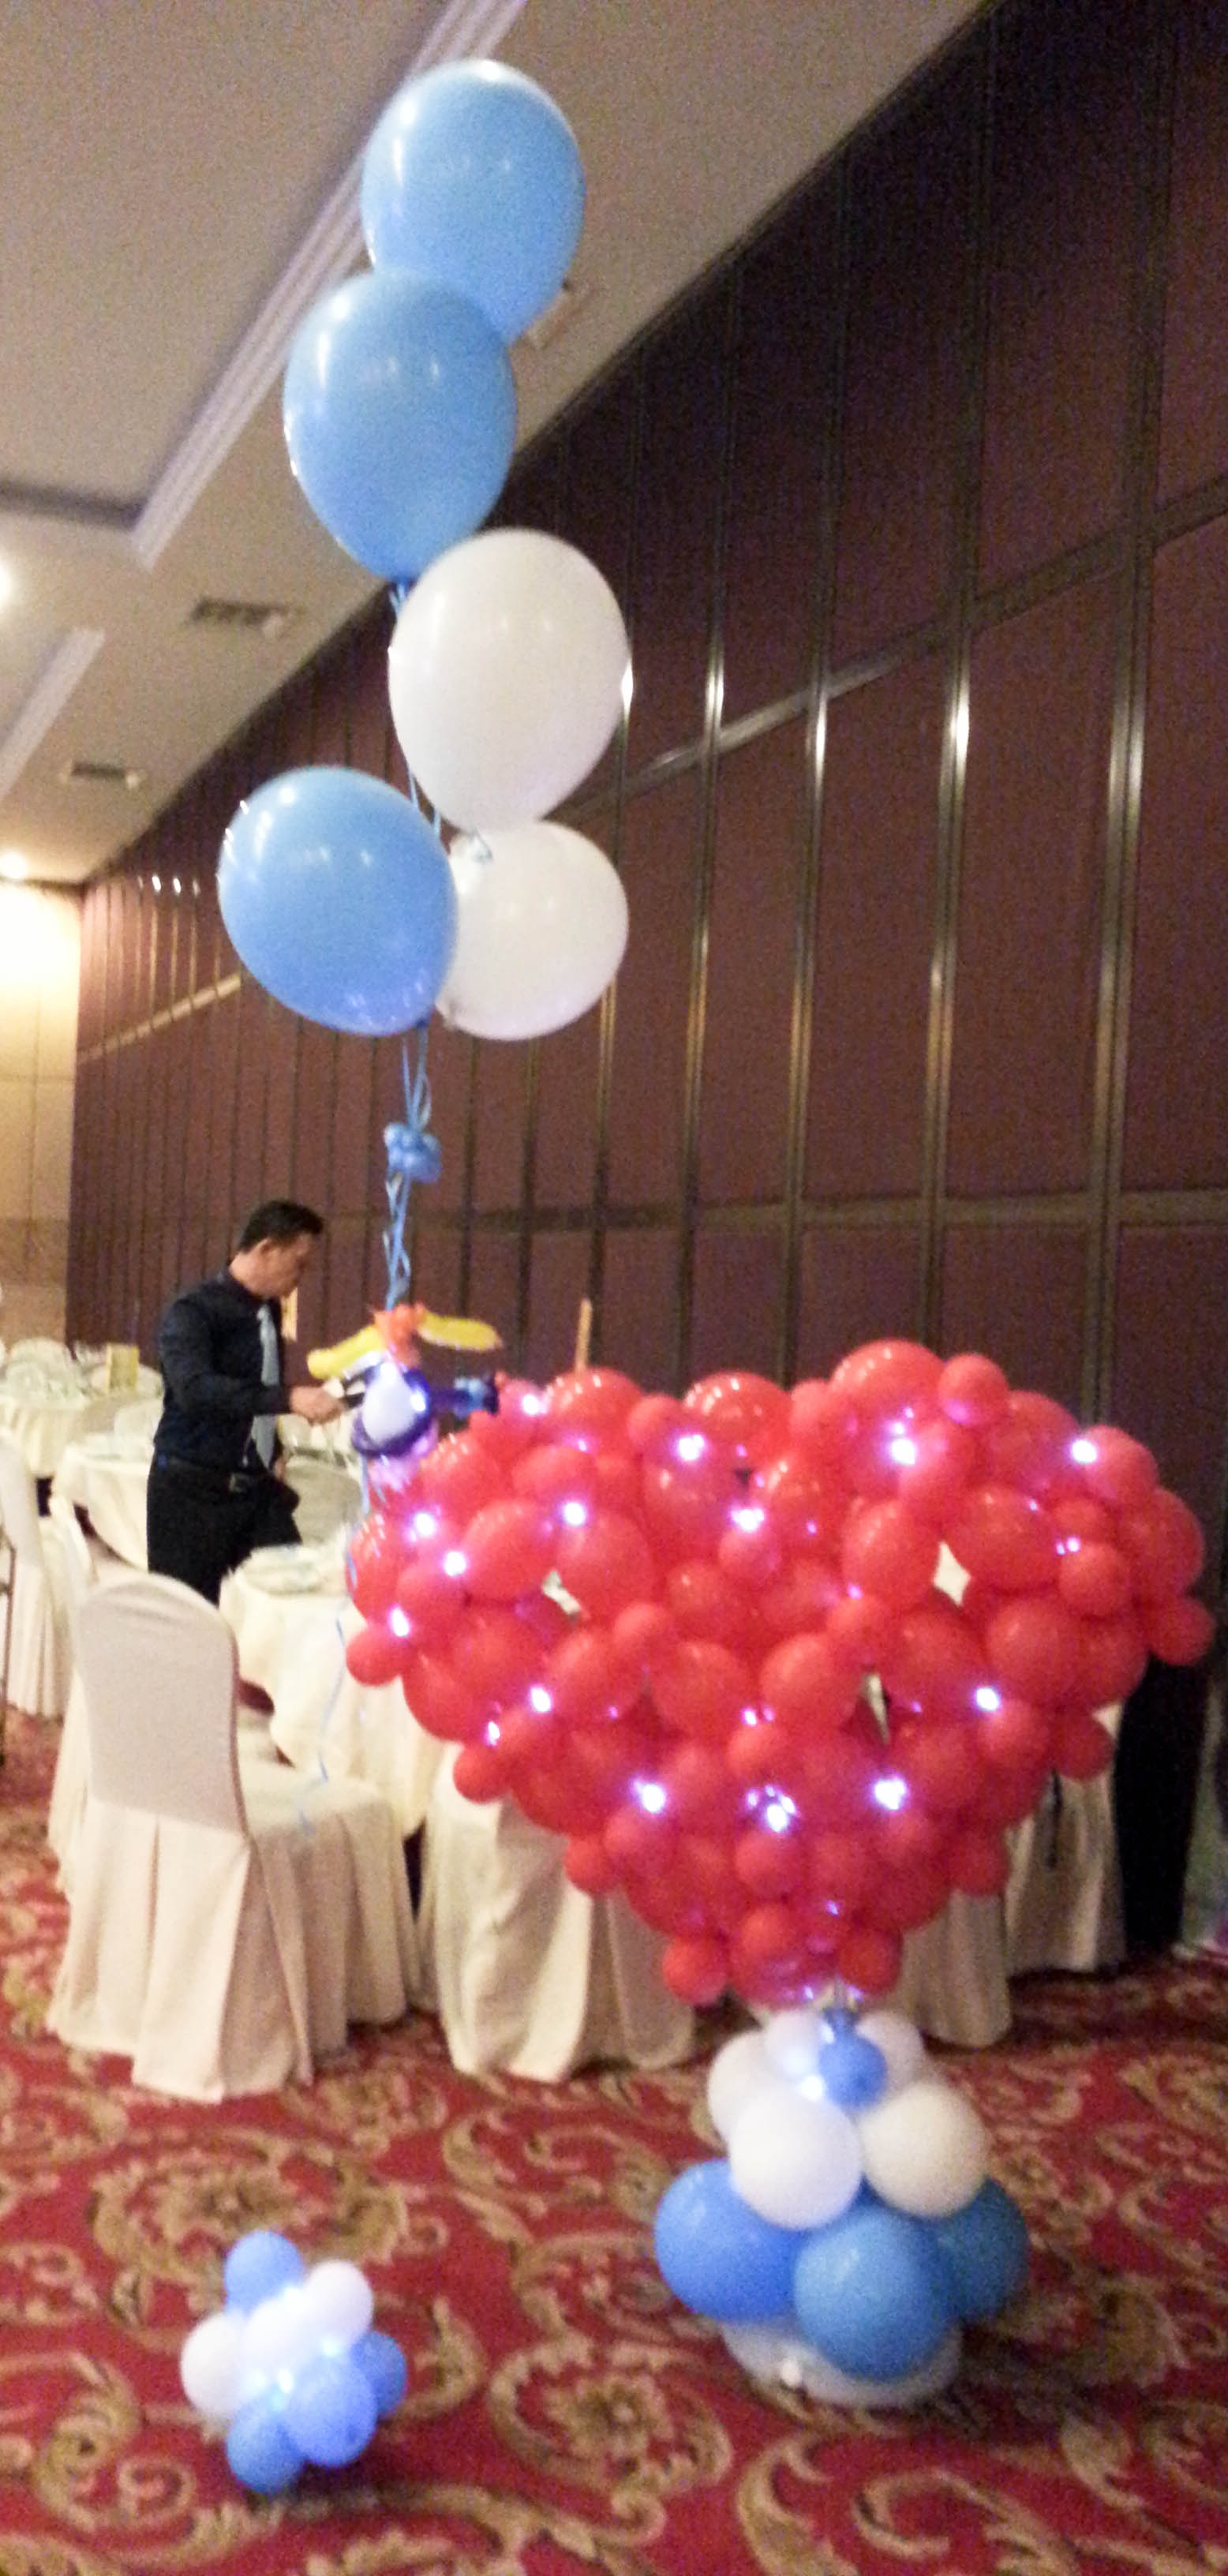 Wedding balloon decorations for events allan friends studios want allan friends studios wedding balloon decorations at your event in kuala lumpur kl petaling jaya pj the klang valley selangor or elsewhere junglespirit Gallery